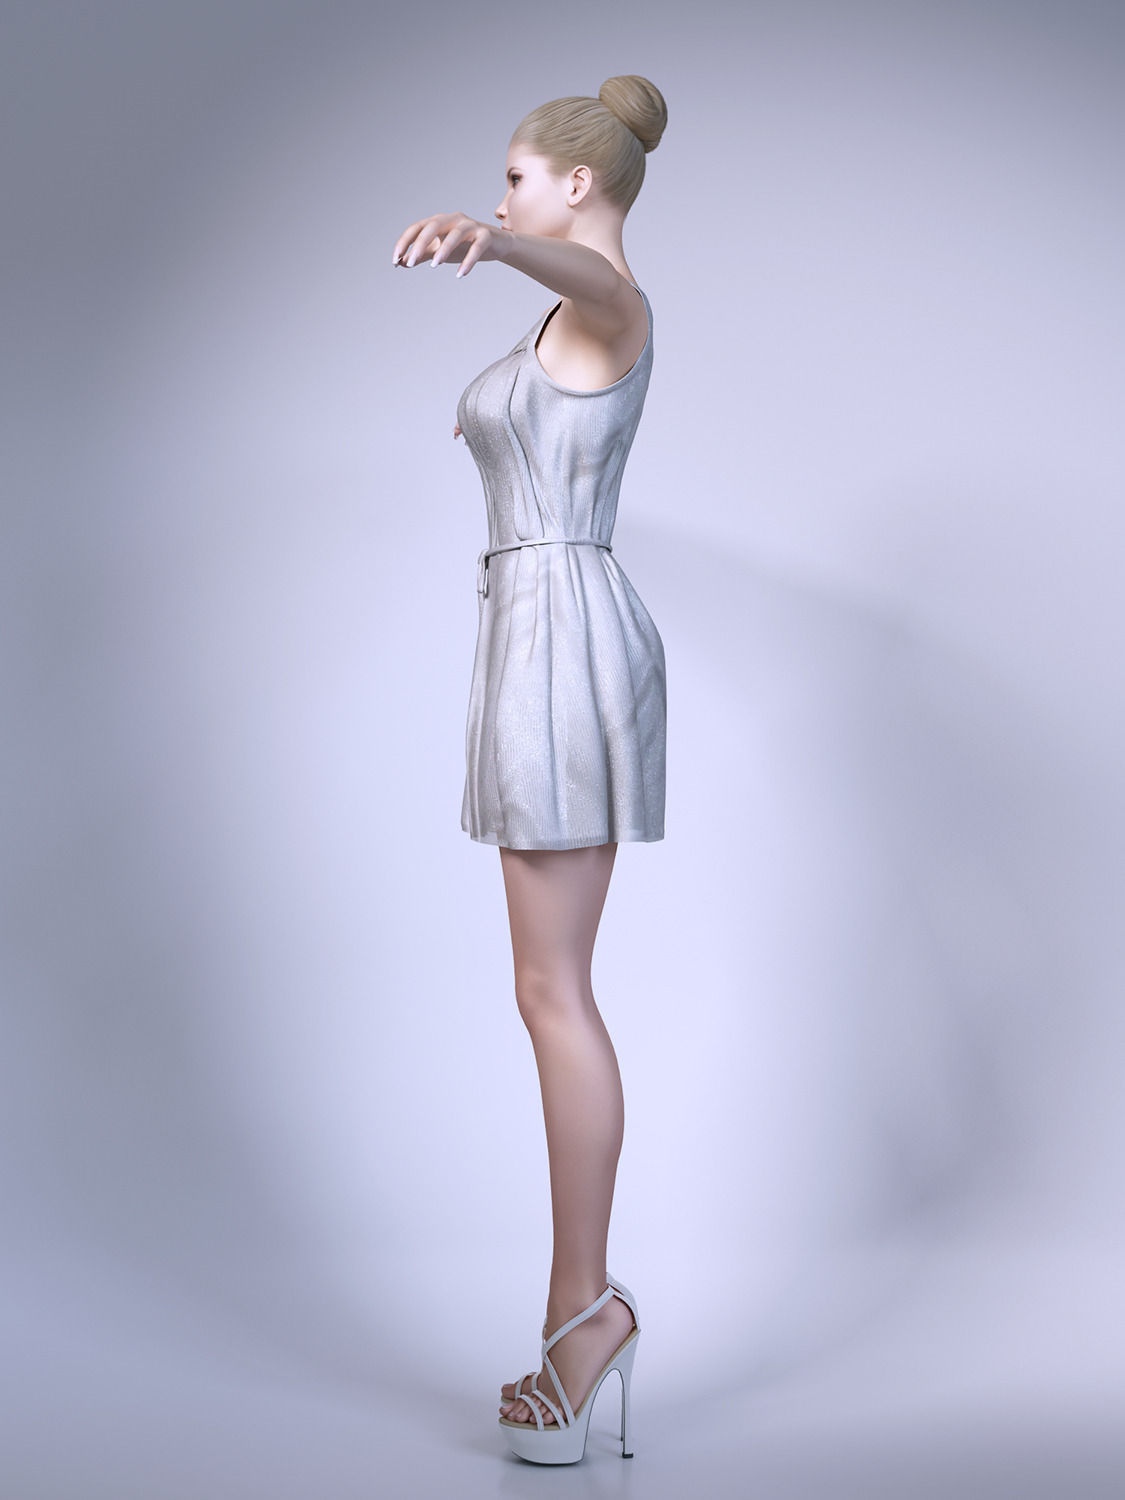 3d Models For Poser And Daz Studio: Girl Wearing Summer Dresses 3D Model MAX OBJ FBX MTL